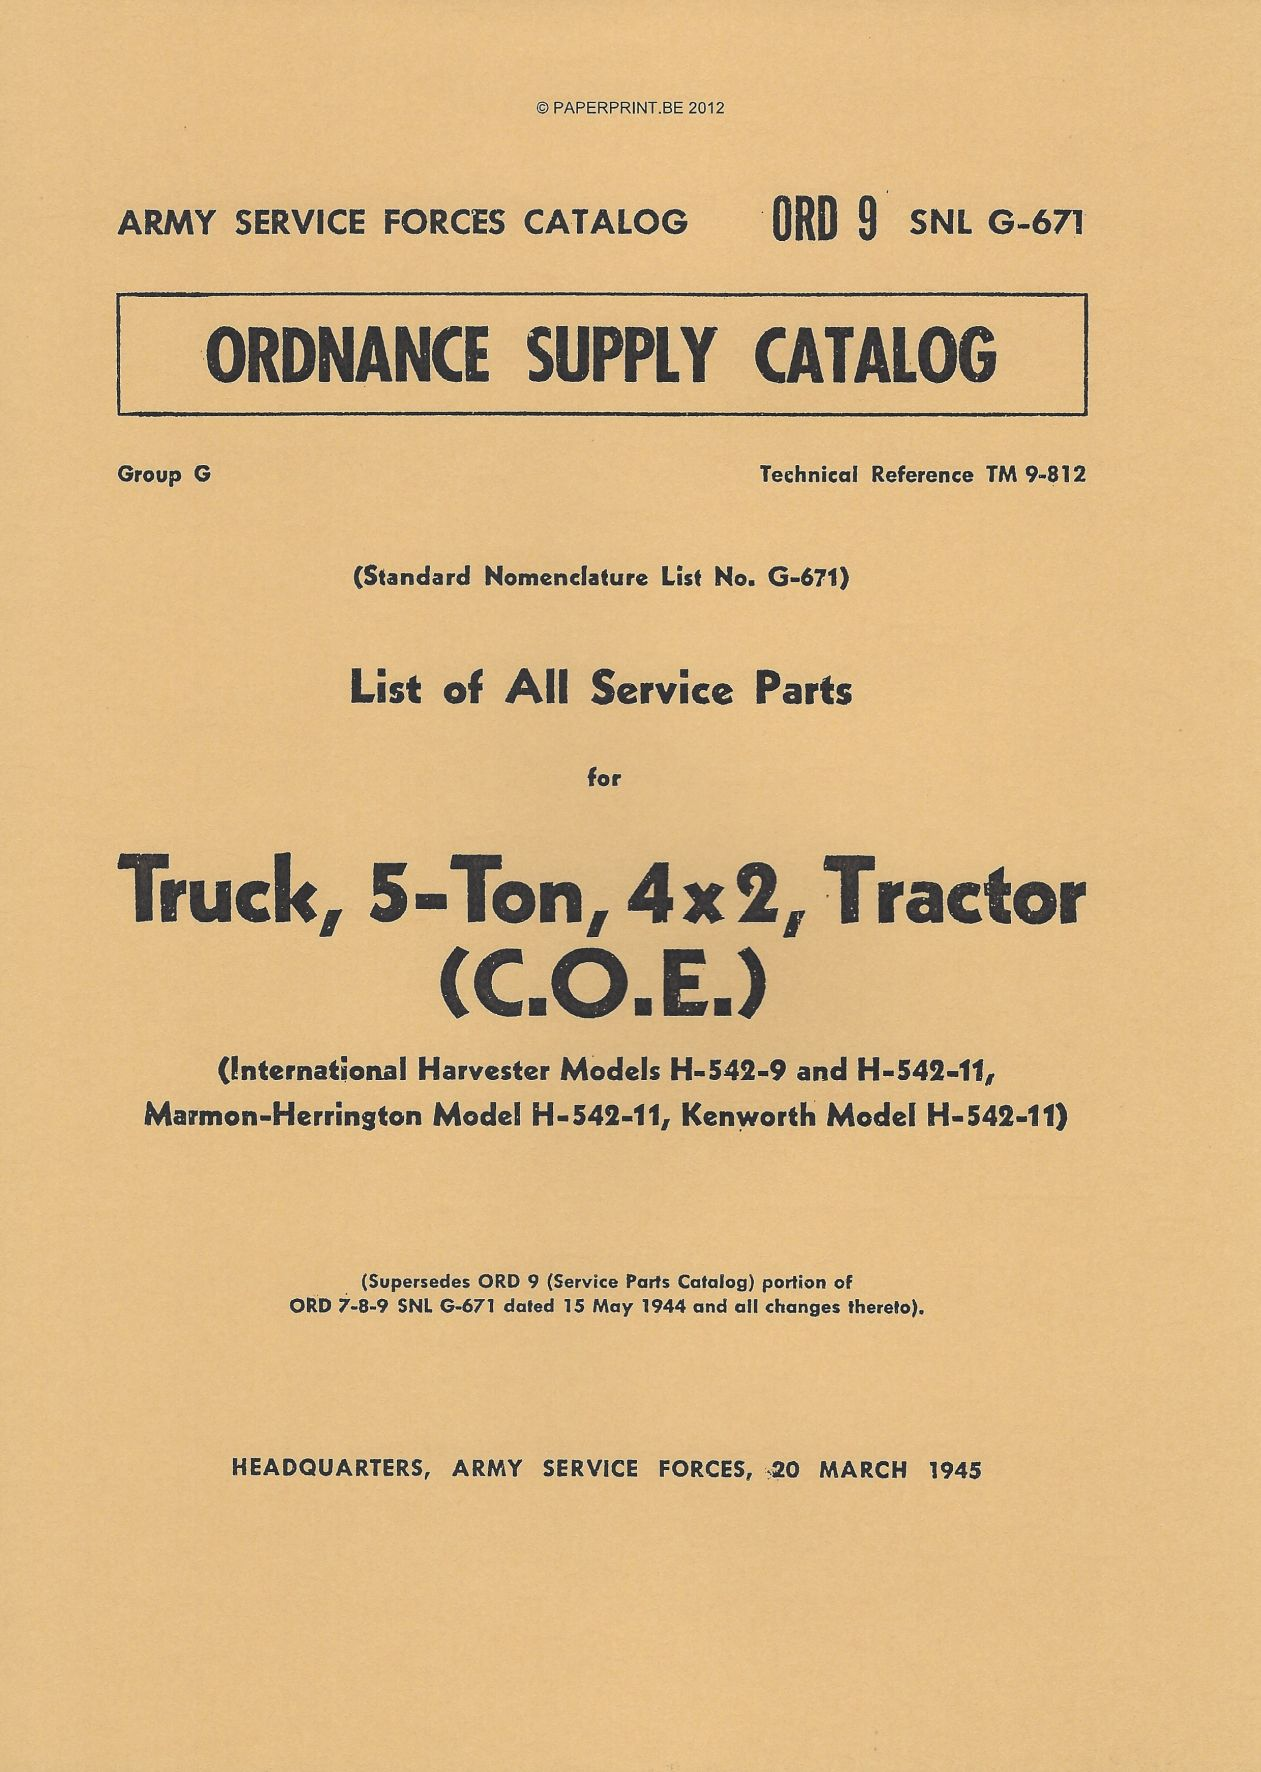 SNL G-671 US PARTS LIST FOR TRUCK, 5-TON, 4x2, TRACTOR (C.O.E.)